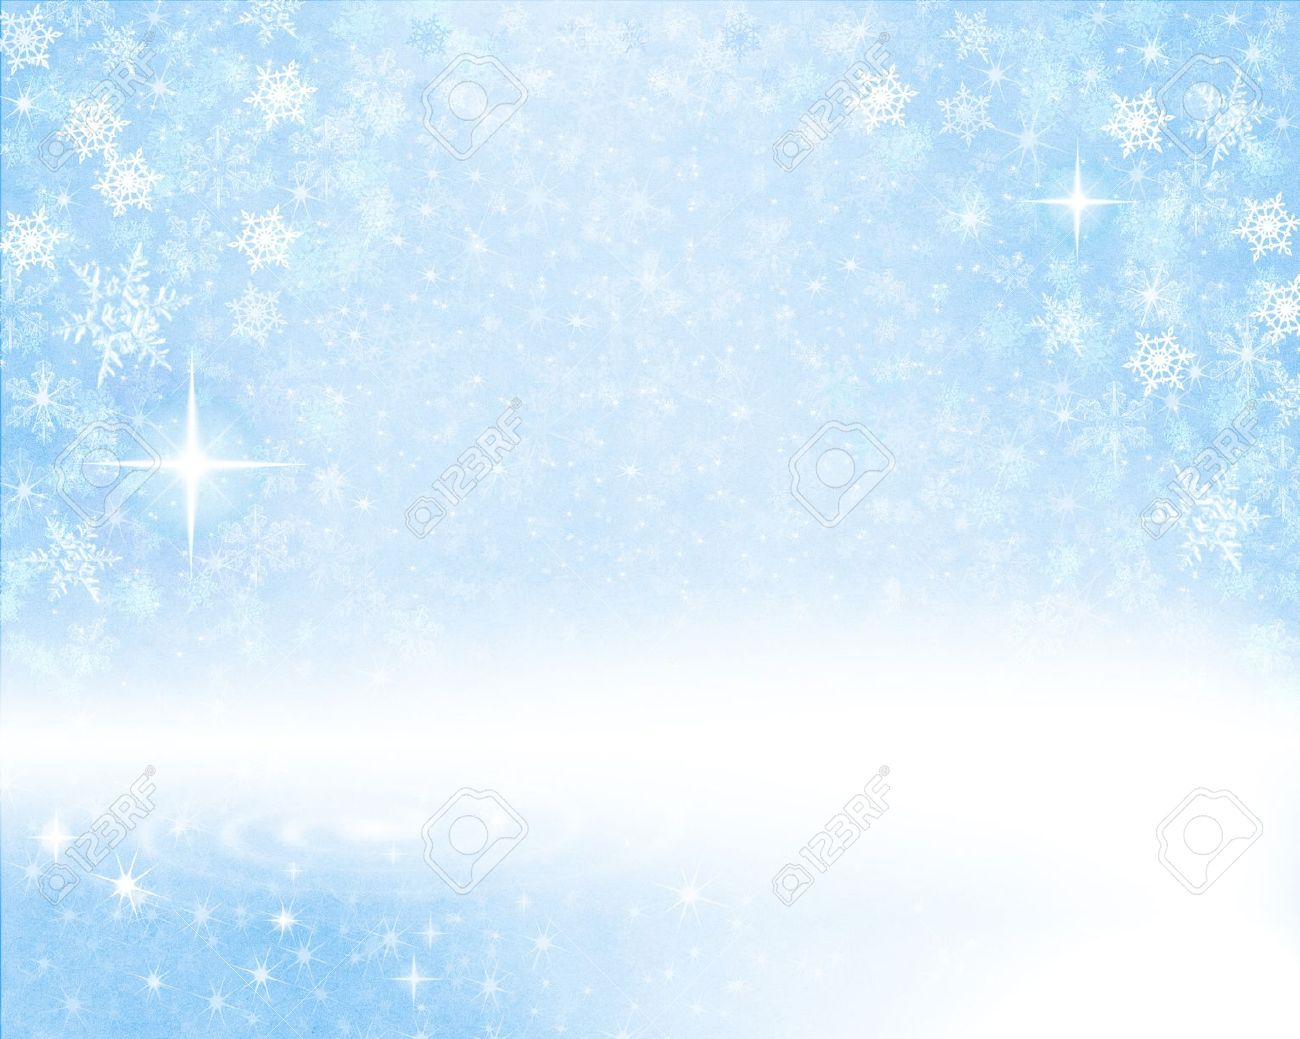 glowing snow flakes on a light blue textured paper background